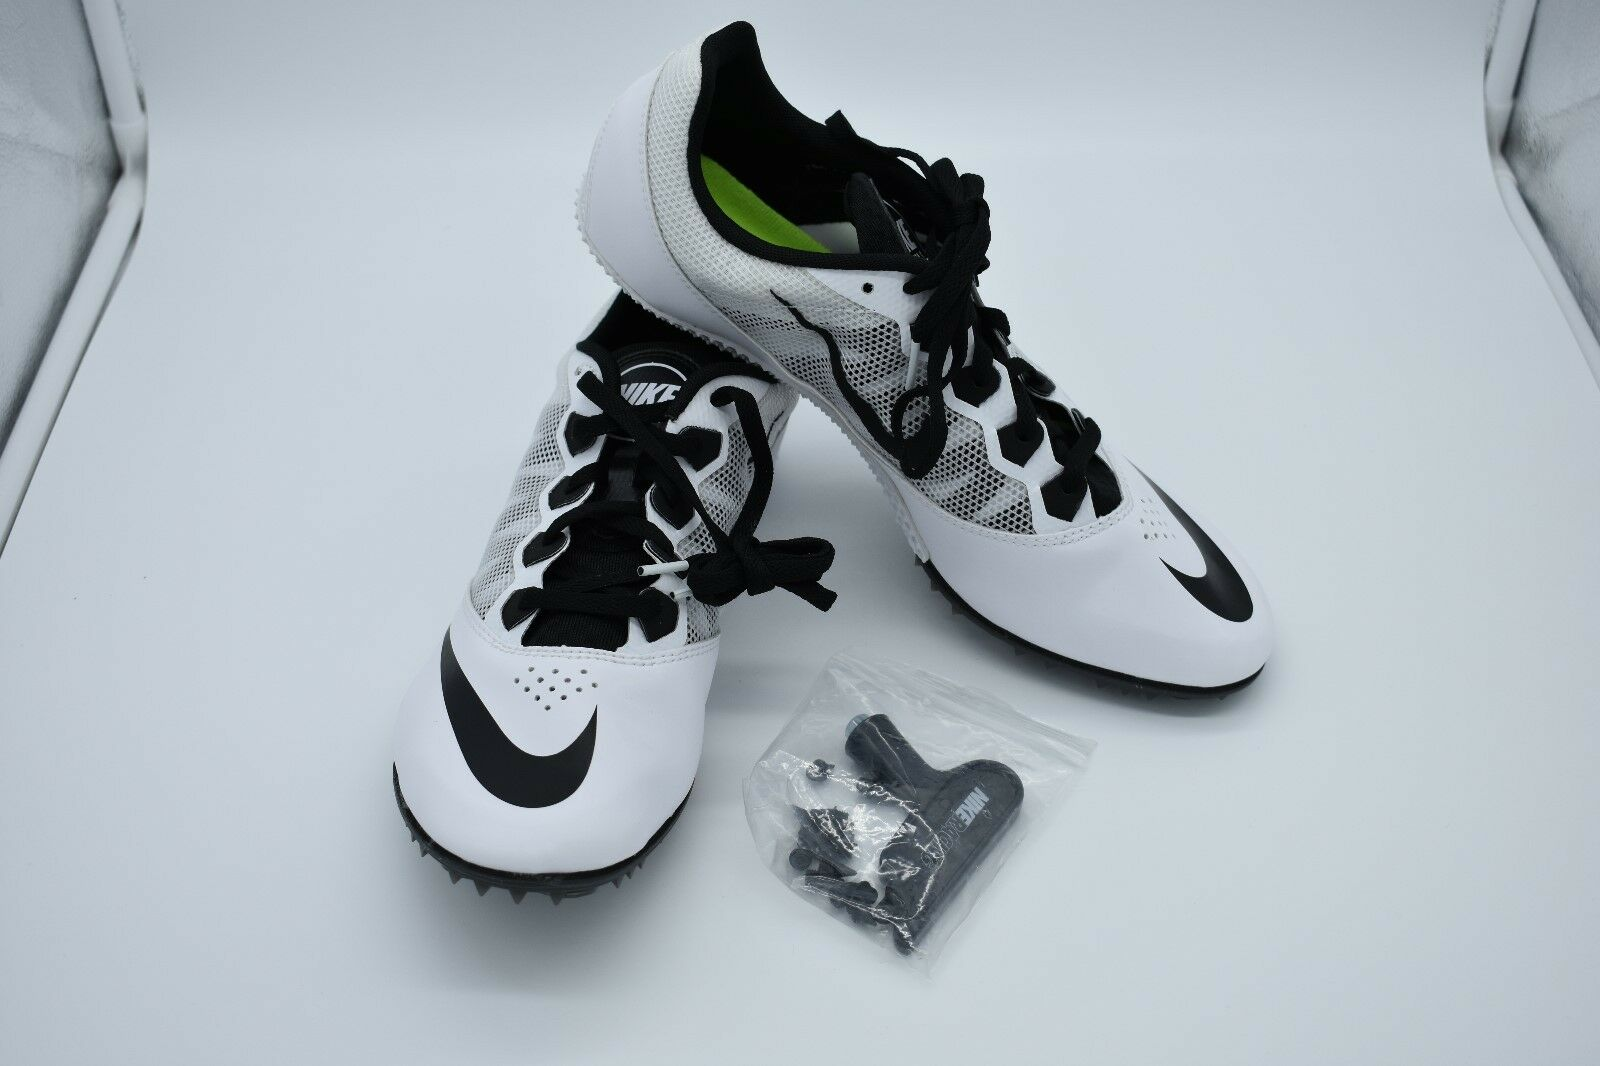 Nike Zoom Rival S 7 Men's Running Track Spikes  616313-170 Size 11.5 NWOB